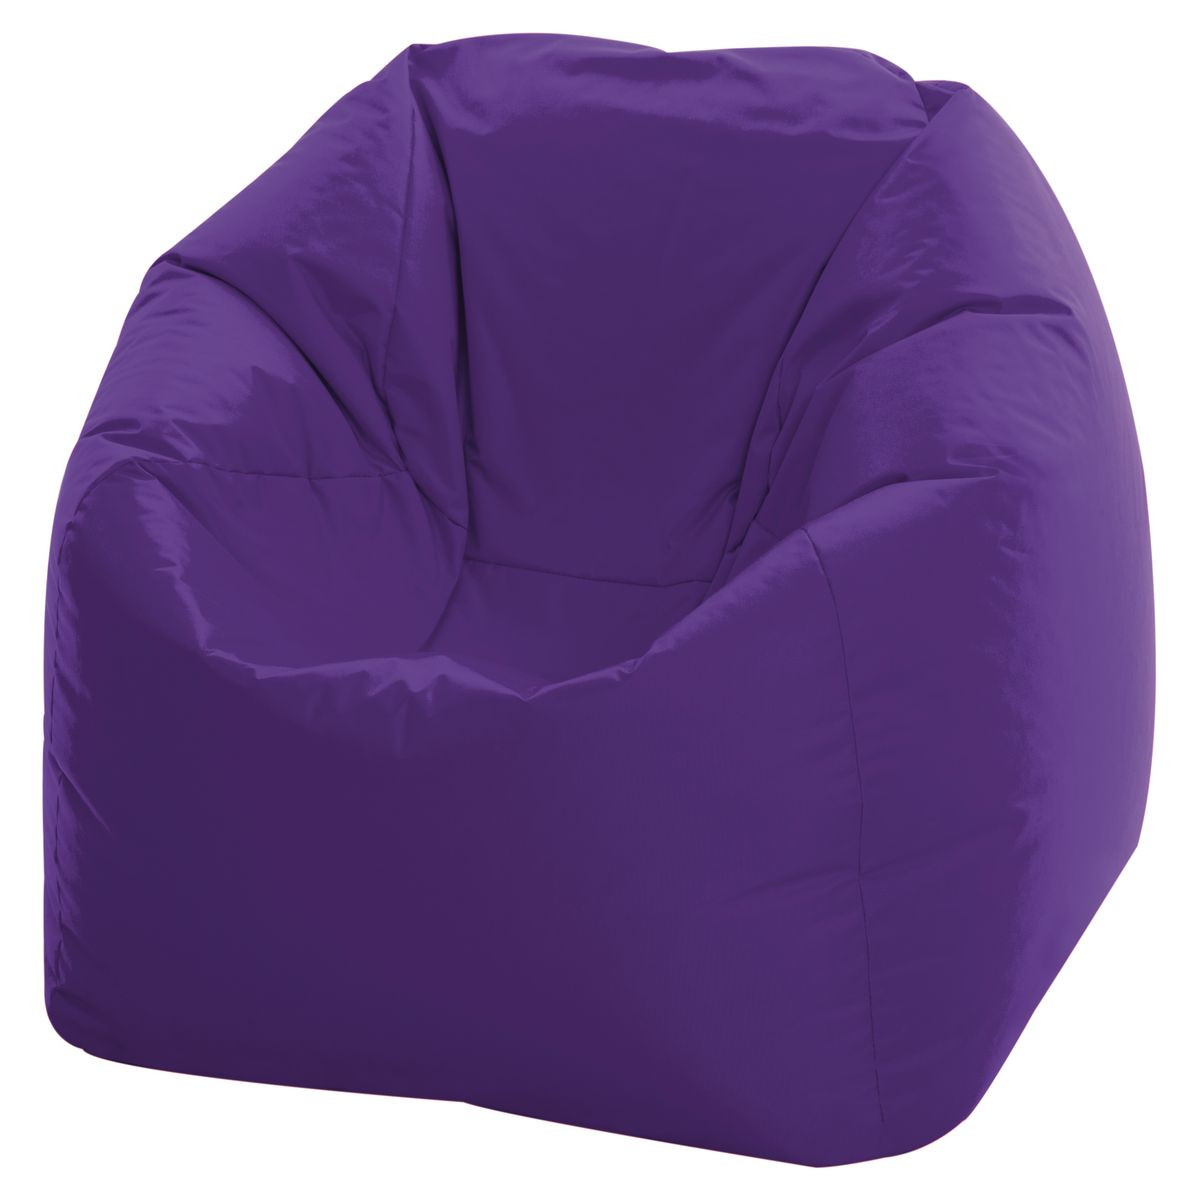 Student Bean Bag Chair Gresswell Specialist Resources